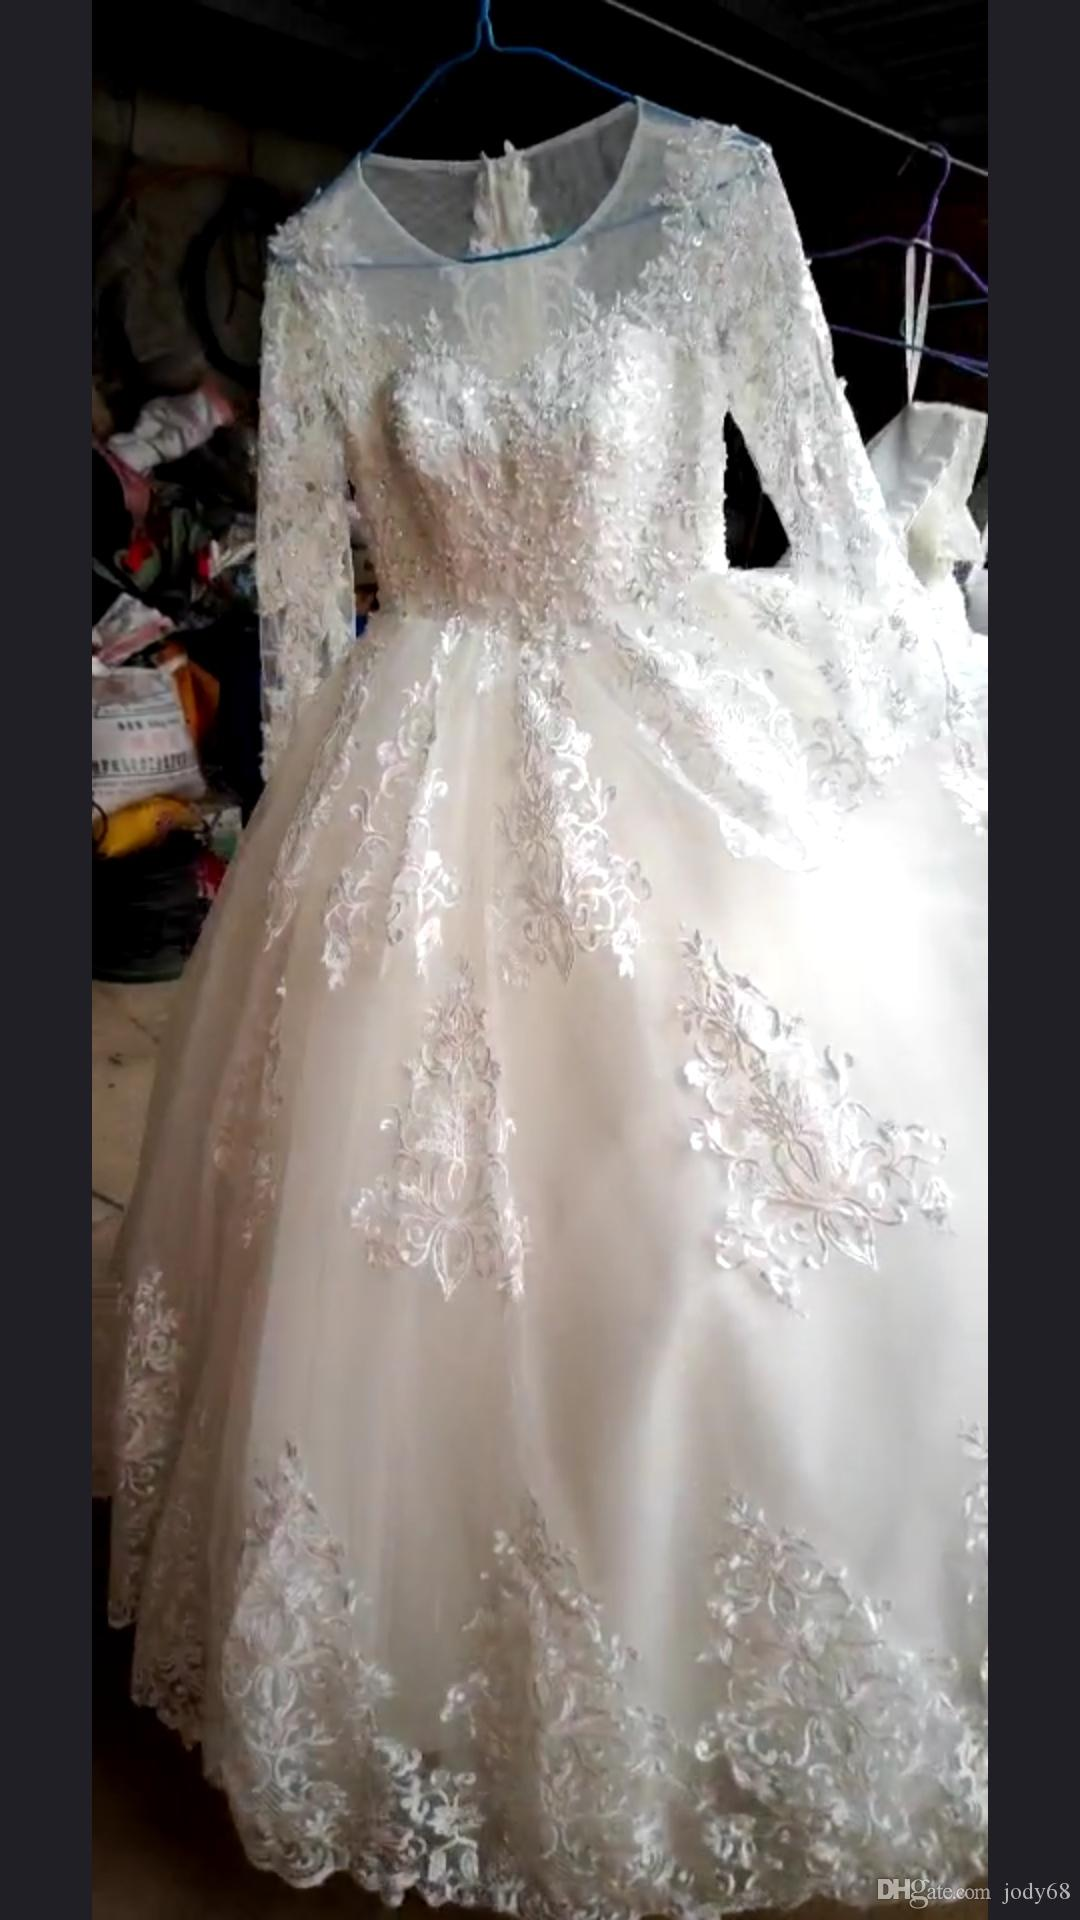 2019 Elegant Luxury And Beautiful Wedding Dresses Super Wedding Gowns  Online with  2450.0 Piece on Jody68 s Store  9060845e0763